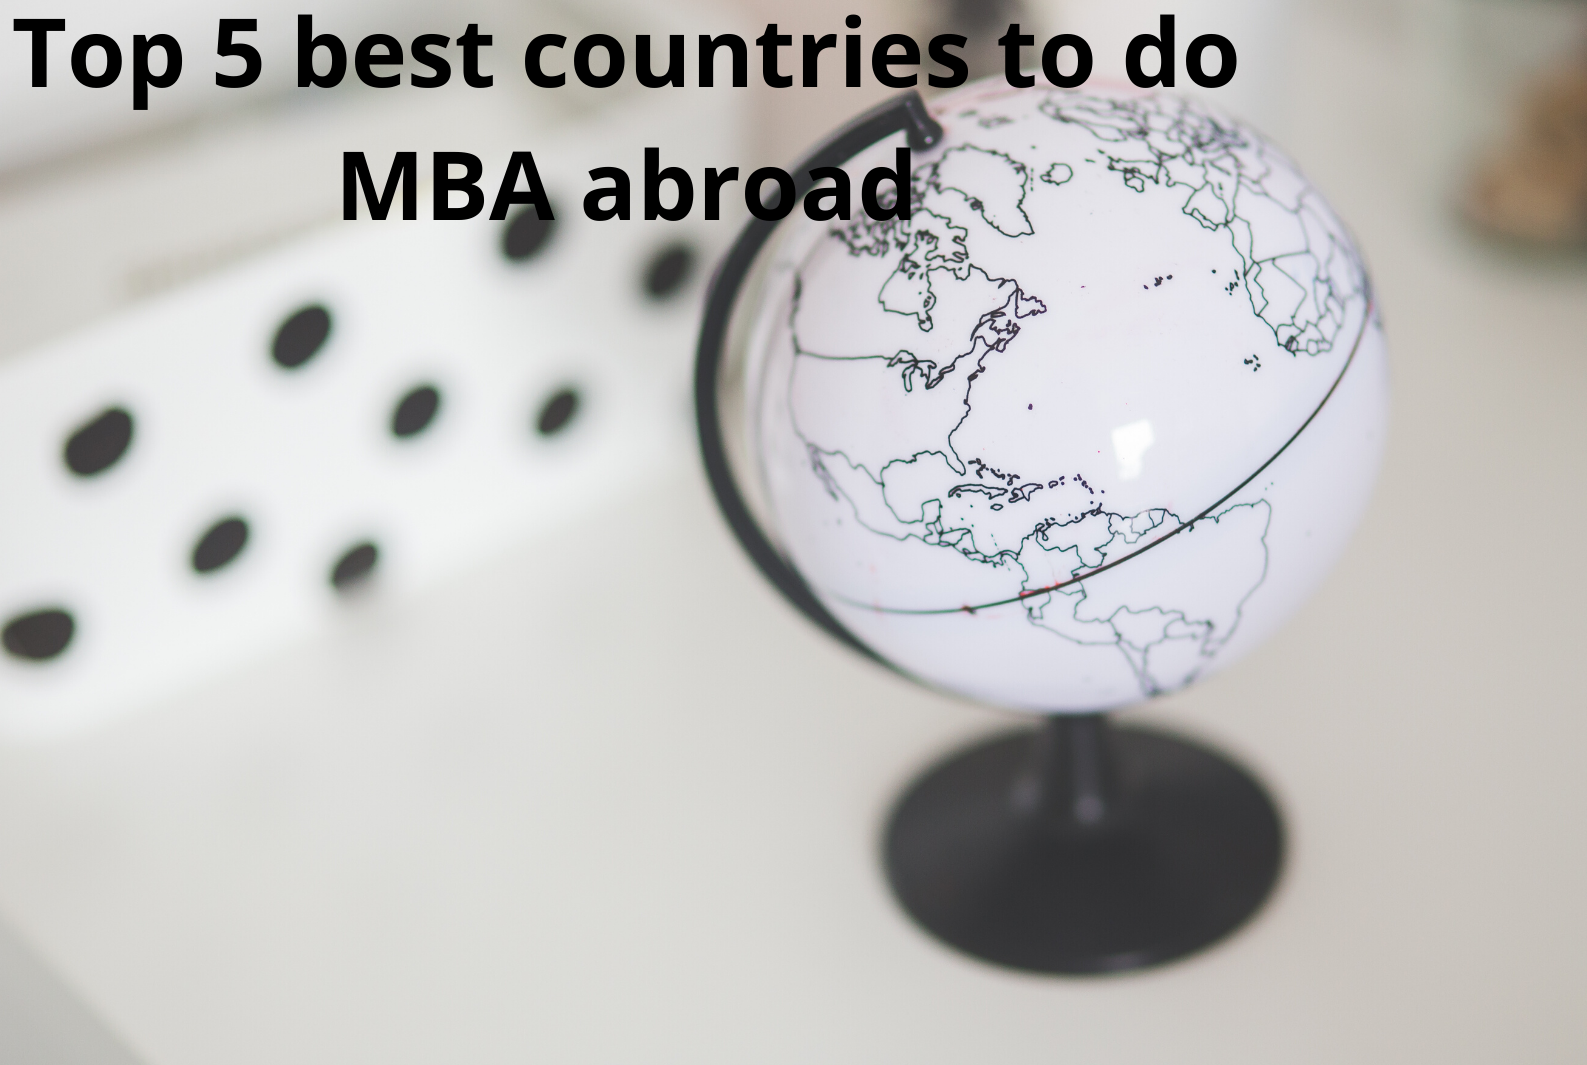 Top 5 best countries to do MBA abroad